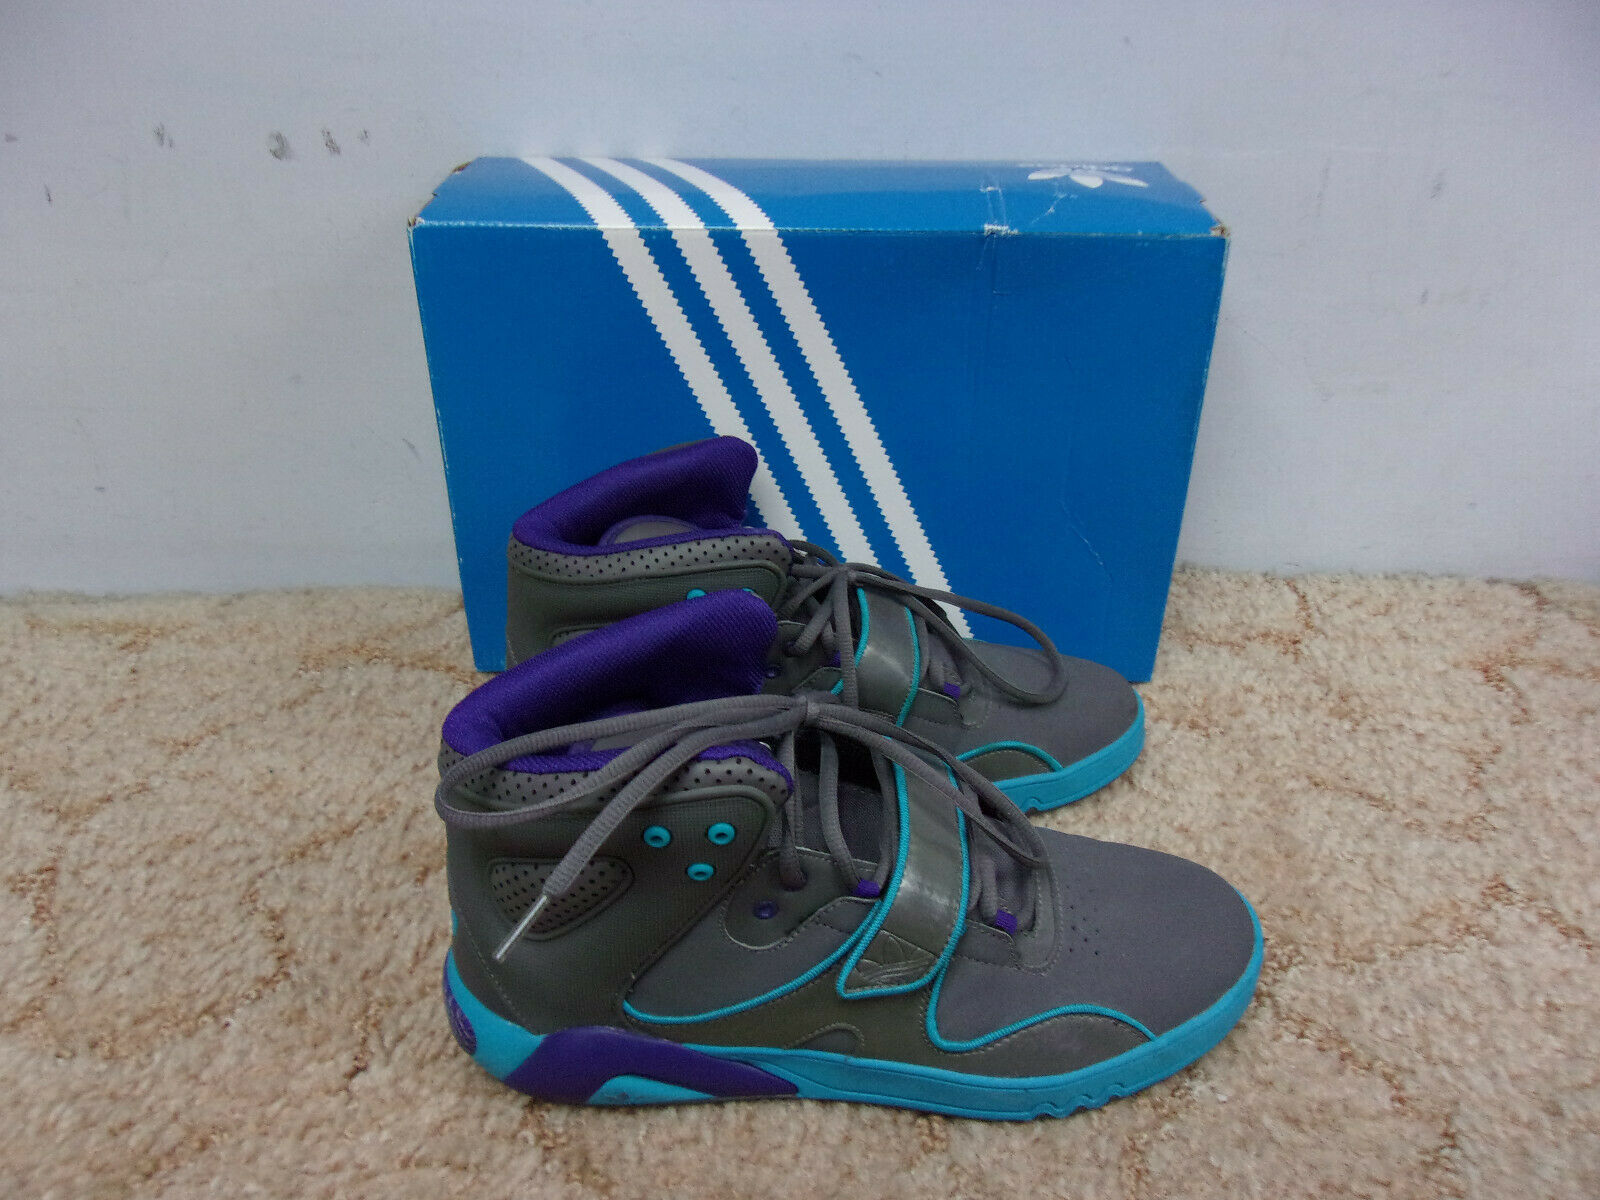 Adidas ROUNDHOUSE MID-PIPED Grey Turquiose shoes w Box Size 10 S42